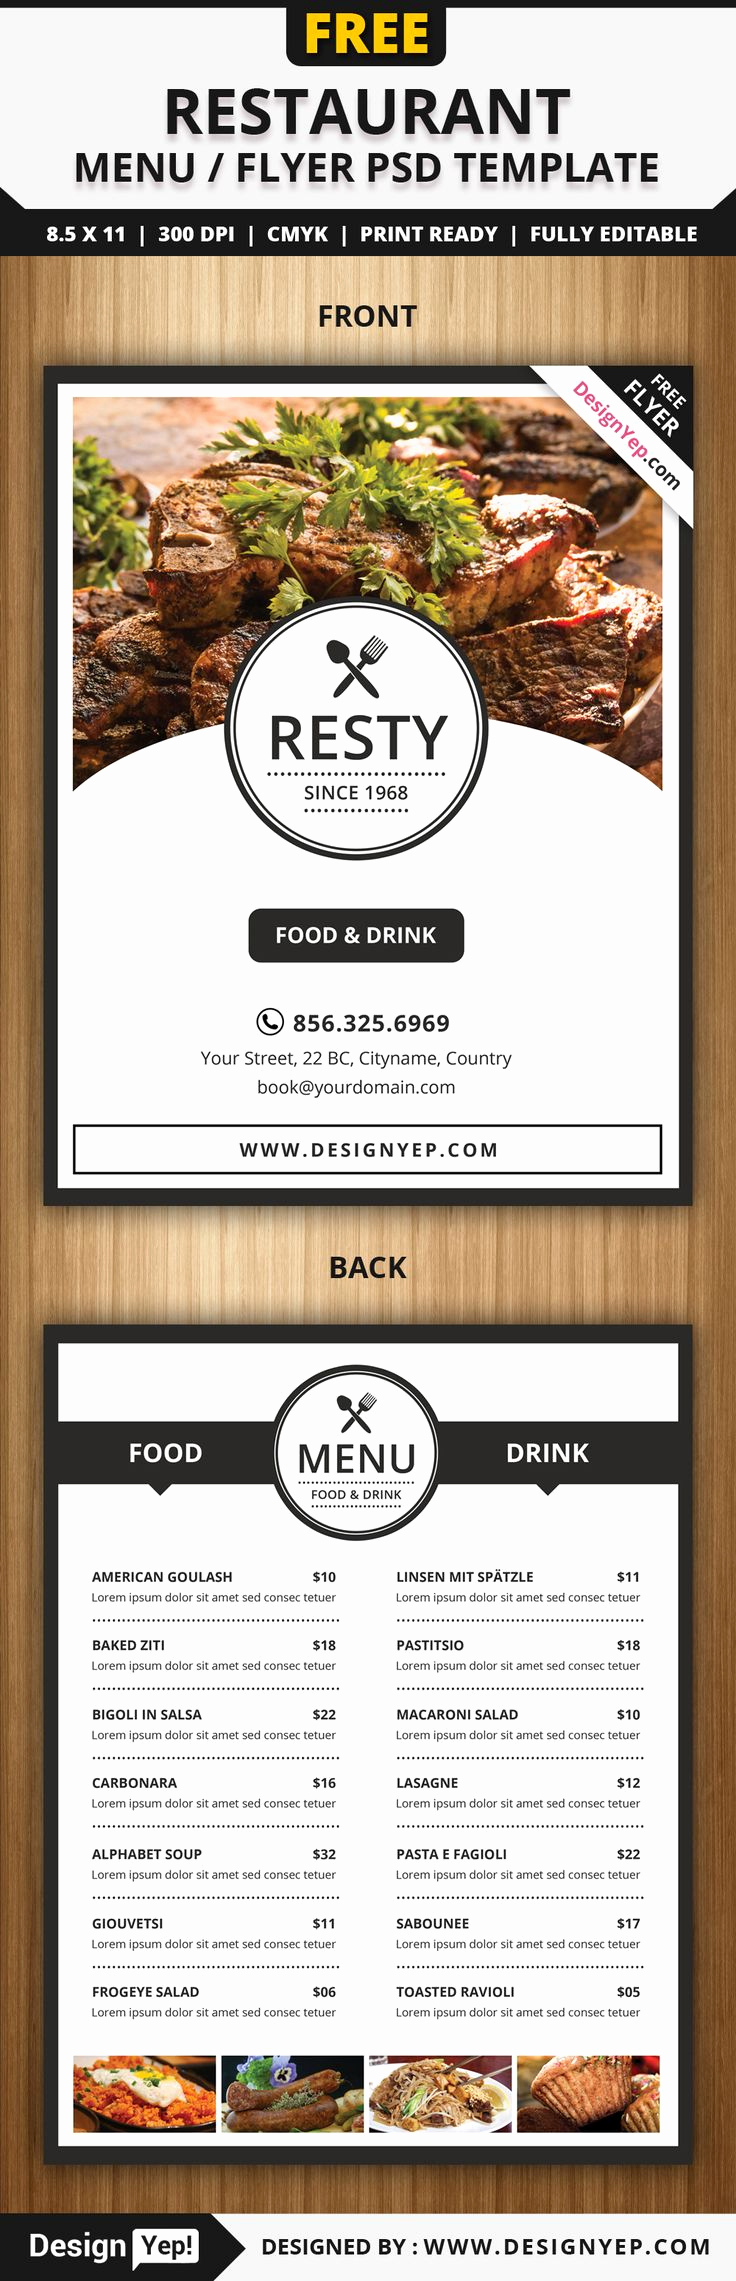 Restaurant Menu Template Psd Lovely Free Restaurant Menu Flyer Psd Template